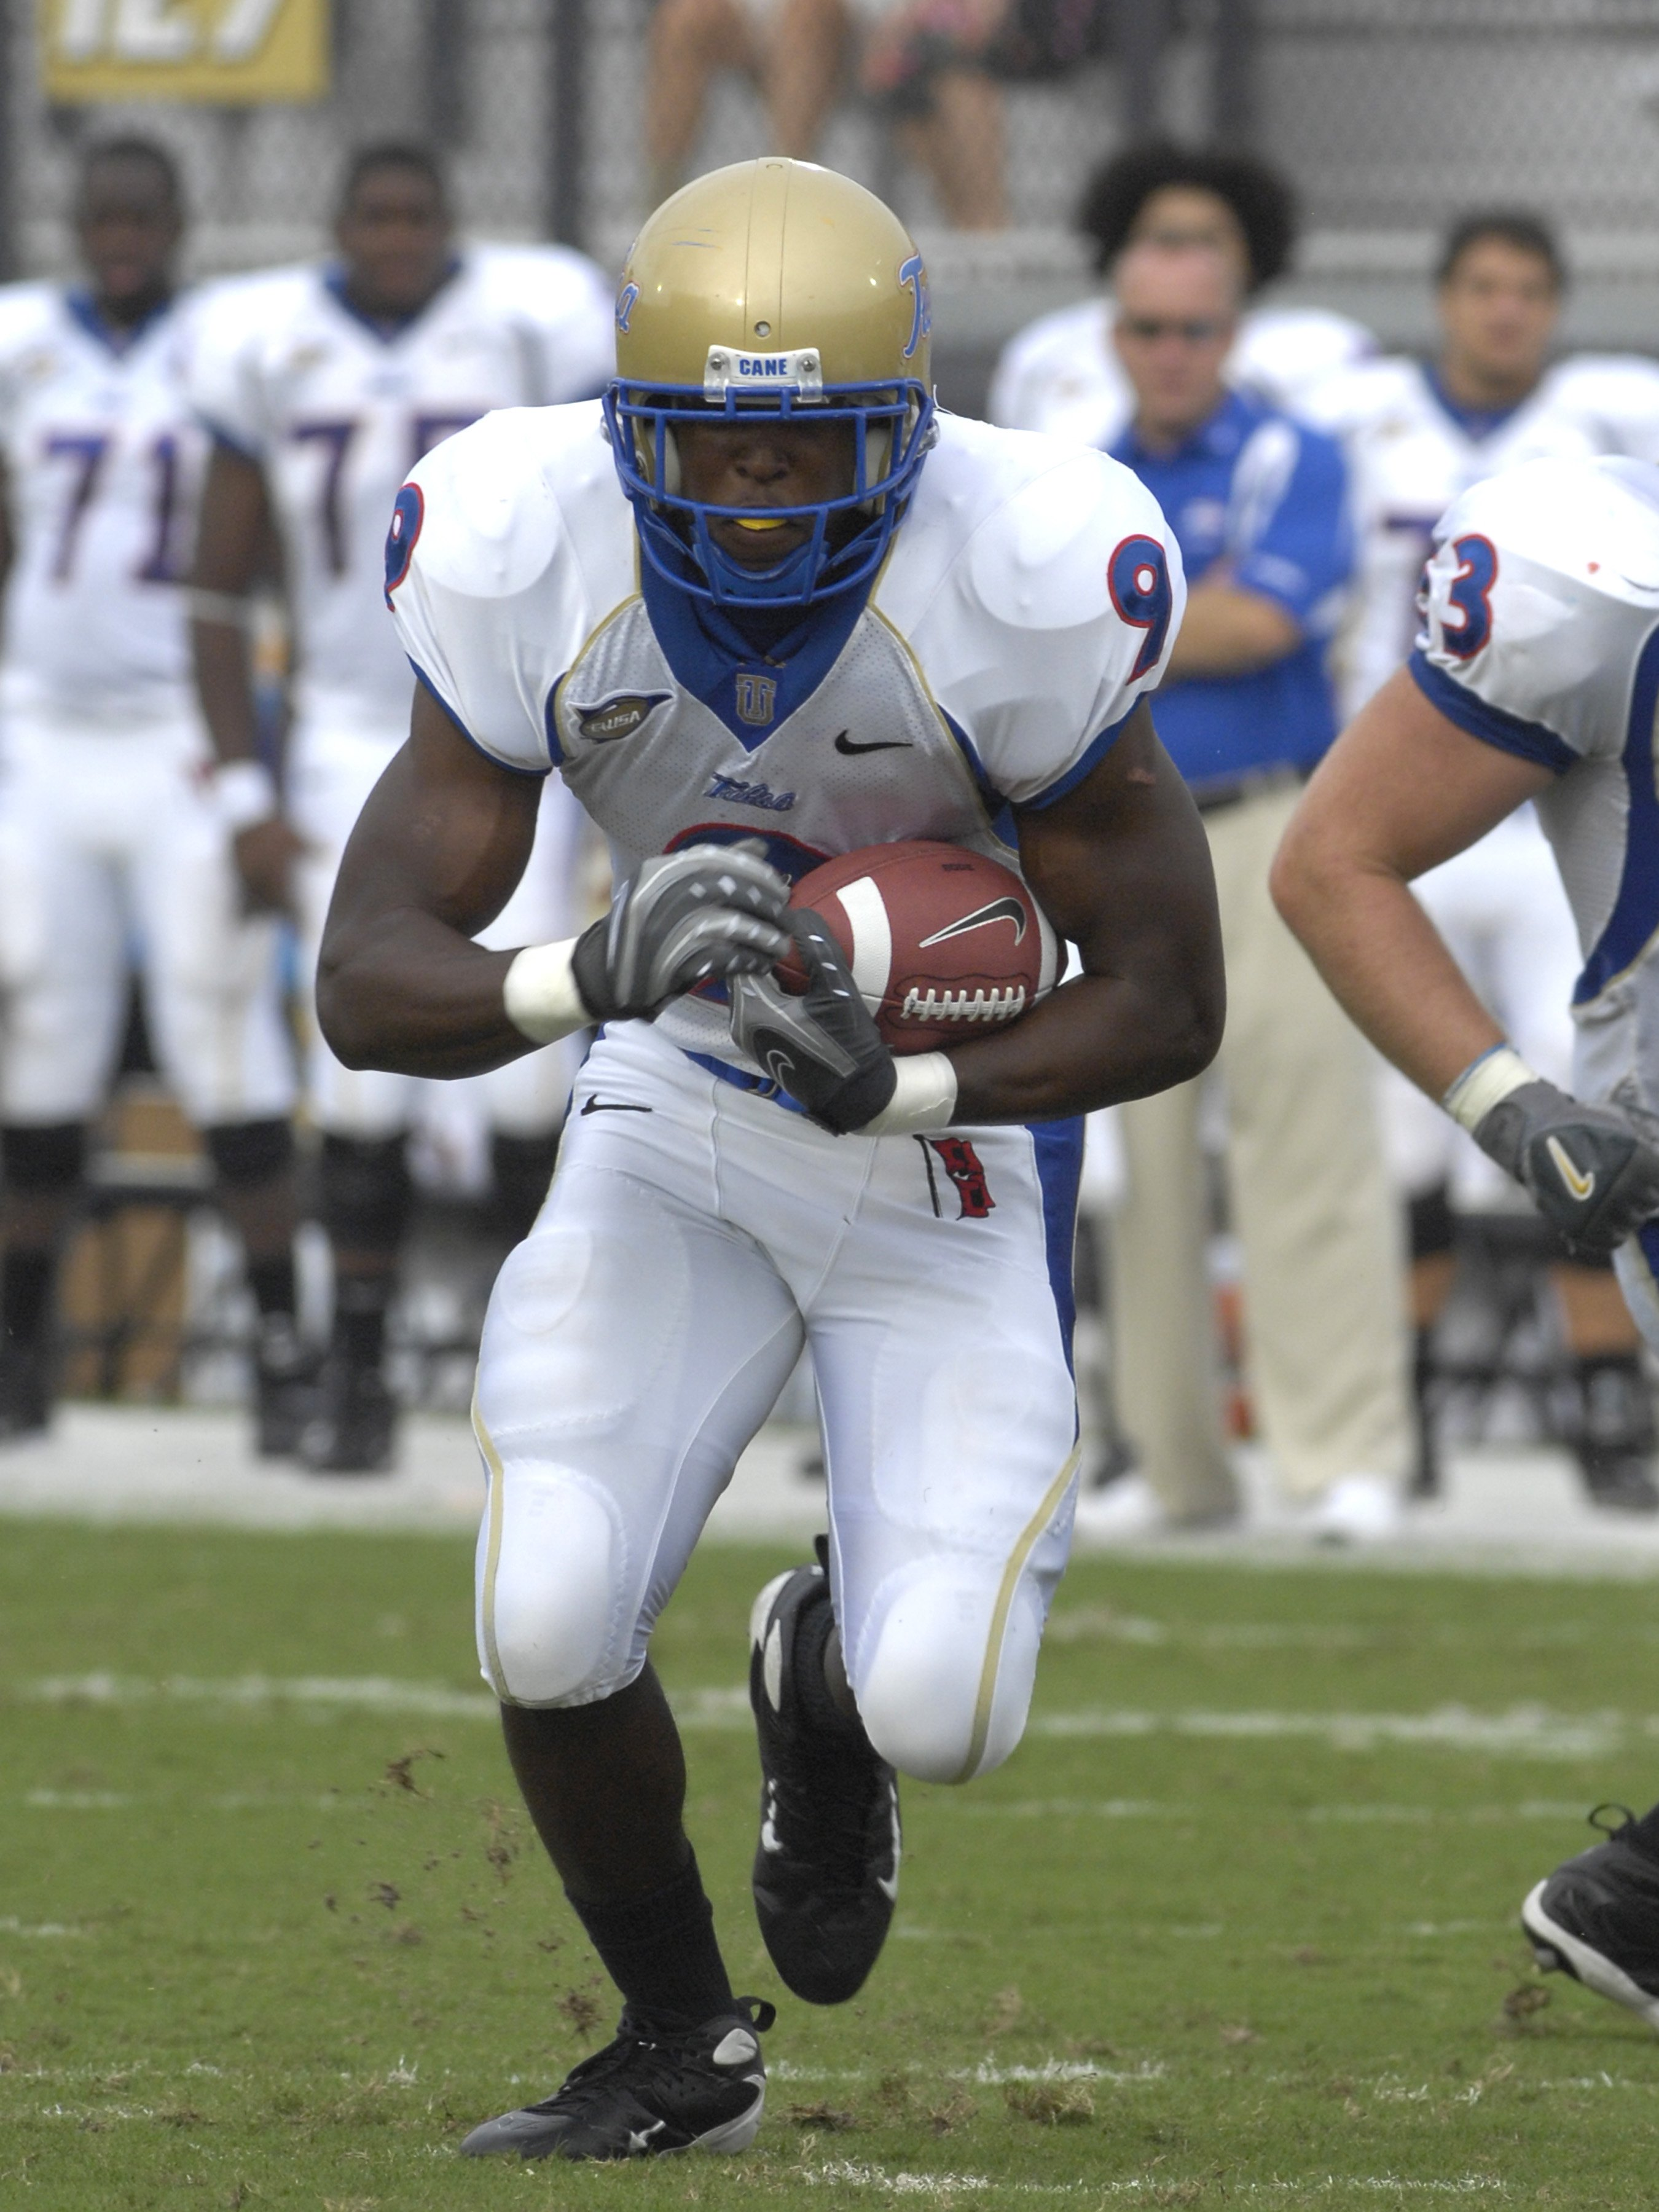 ORLANDO, FL - OCTOBER 20: Fullback Charles Clay #9 of the  Tulsa Golden Hurricane rushes upfield against the University of Central Florida Knights at Bright House Stadium on October 20, 2007 in Orlando, Florida.  UCF won 44 - 23. (Photo by Al Messerschmid